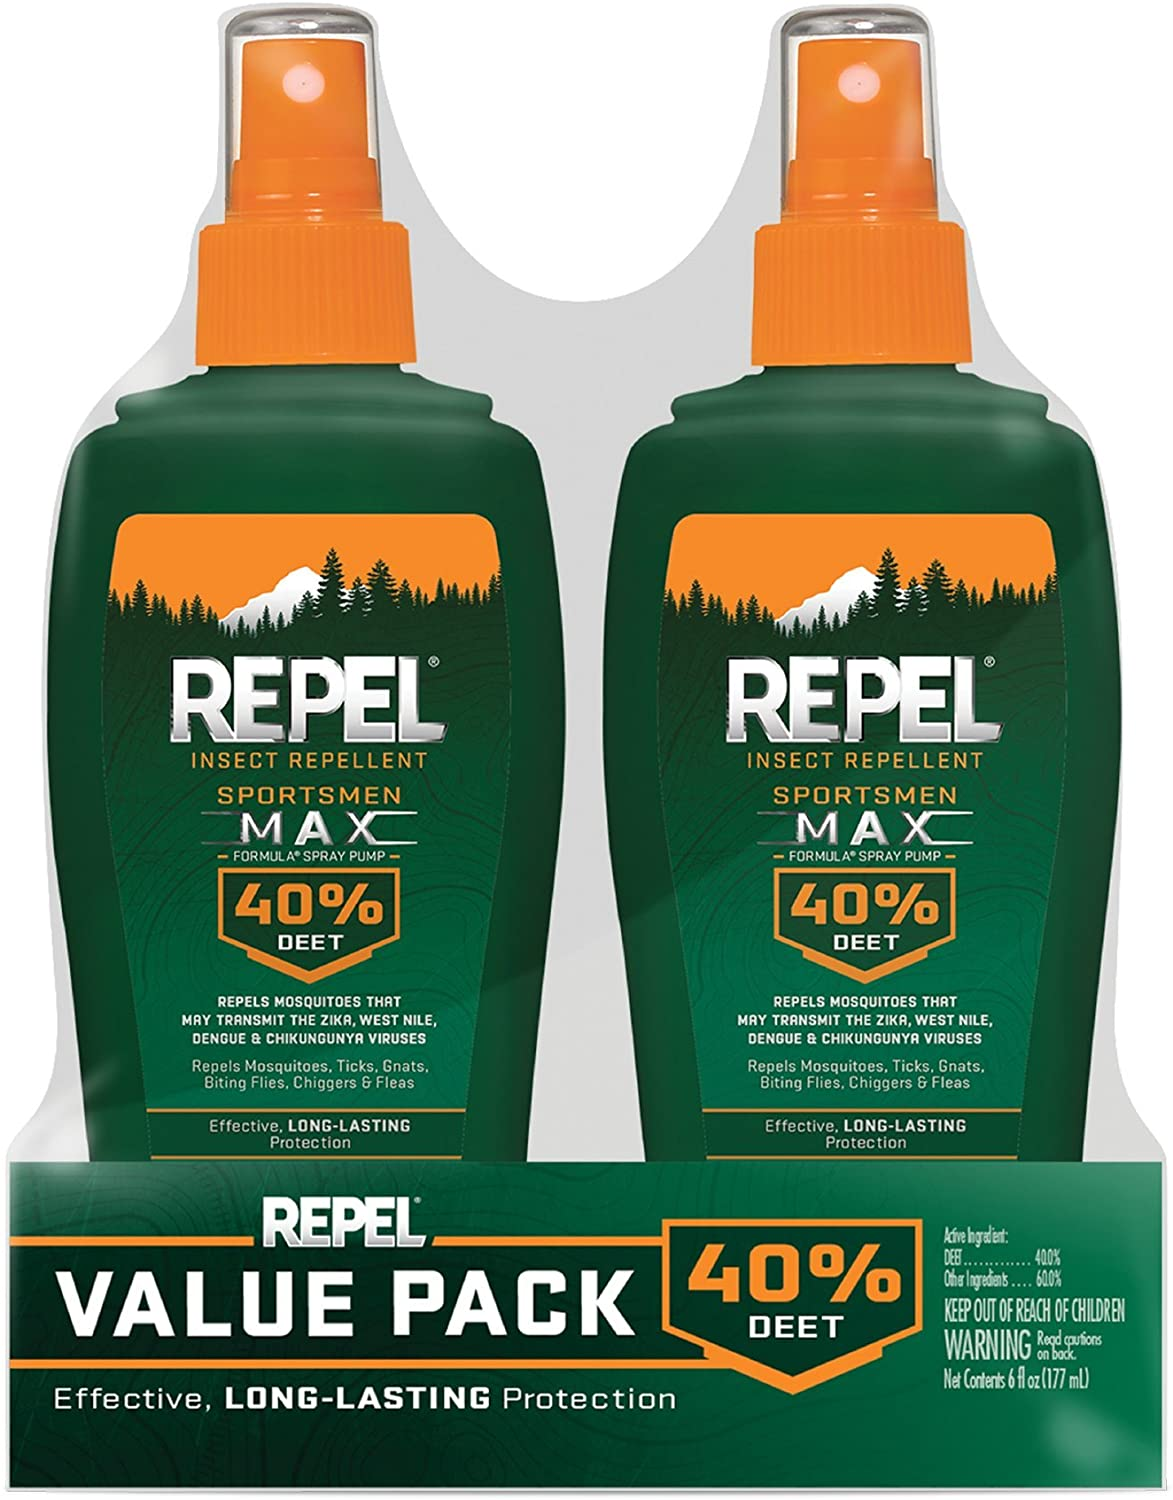 Repel Insect Repellent Sportsmen Max Formula Spray